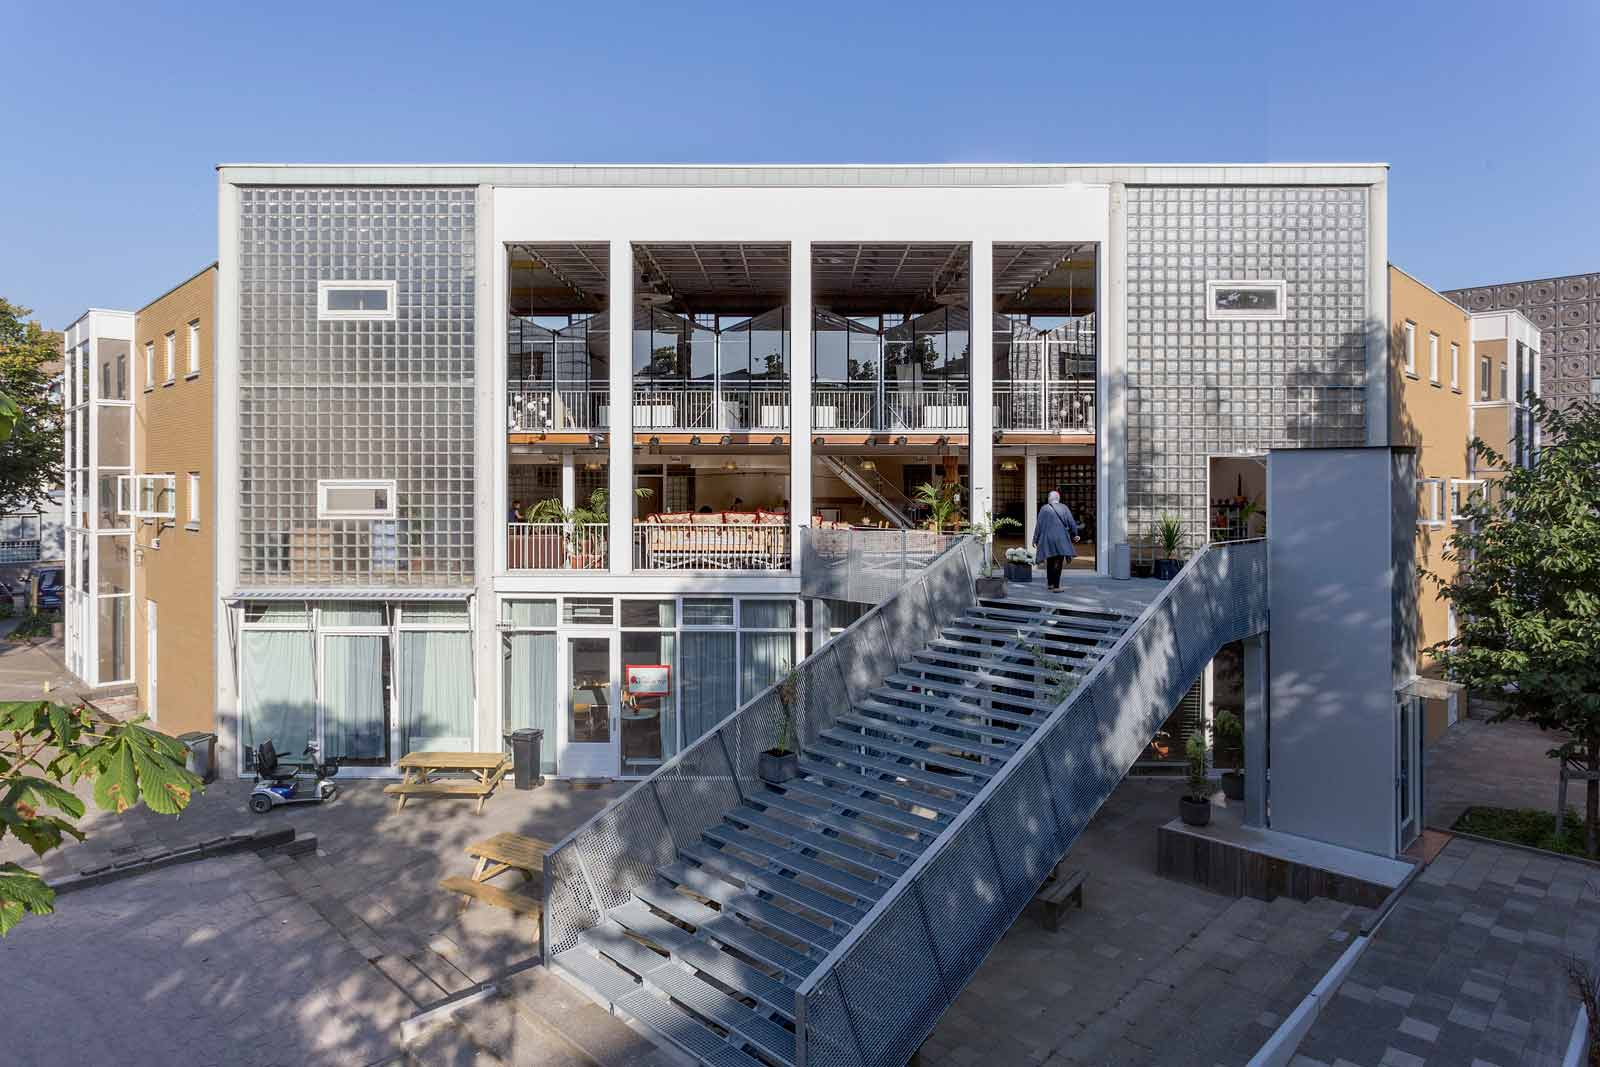 BETA office for architecture and the city Amsterdam Ru Paré Community exterior photo